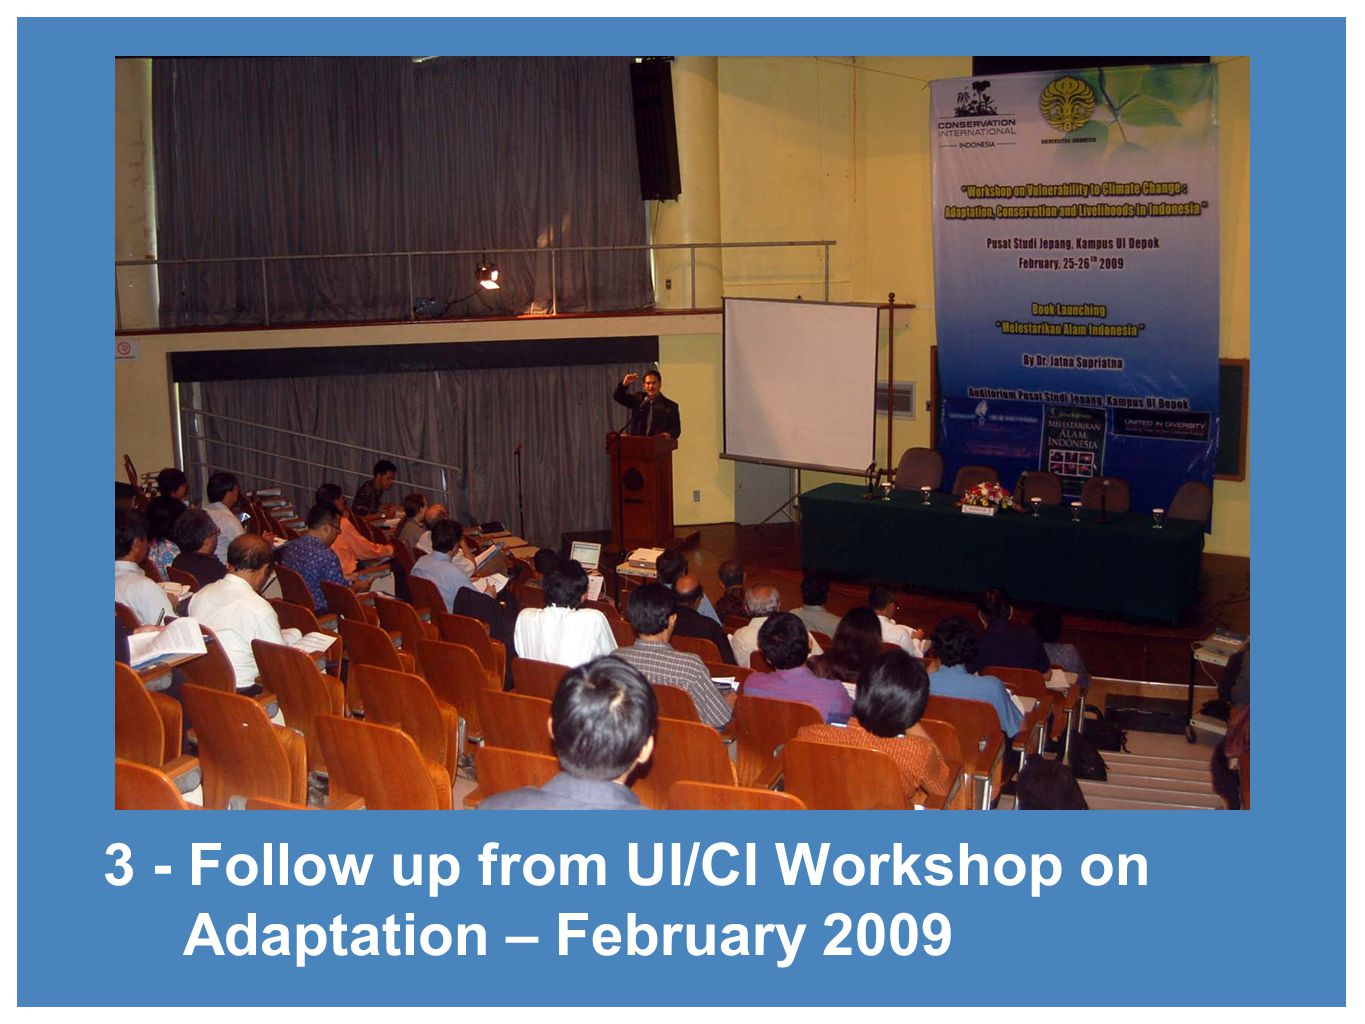 3 - Follow up from UI/CI Workshop on Adaptation – February 2009